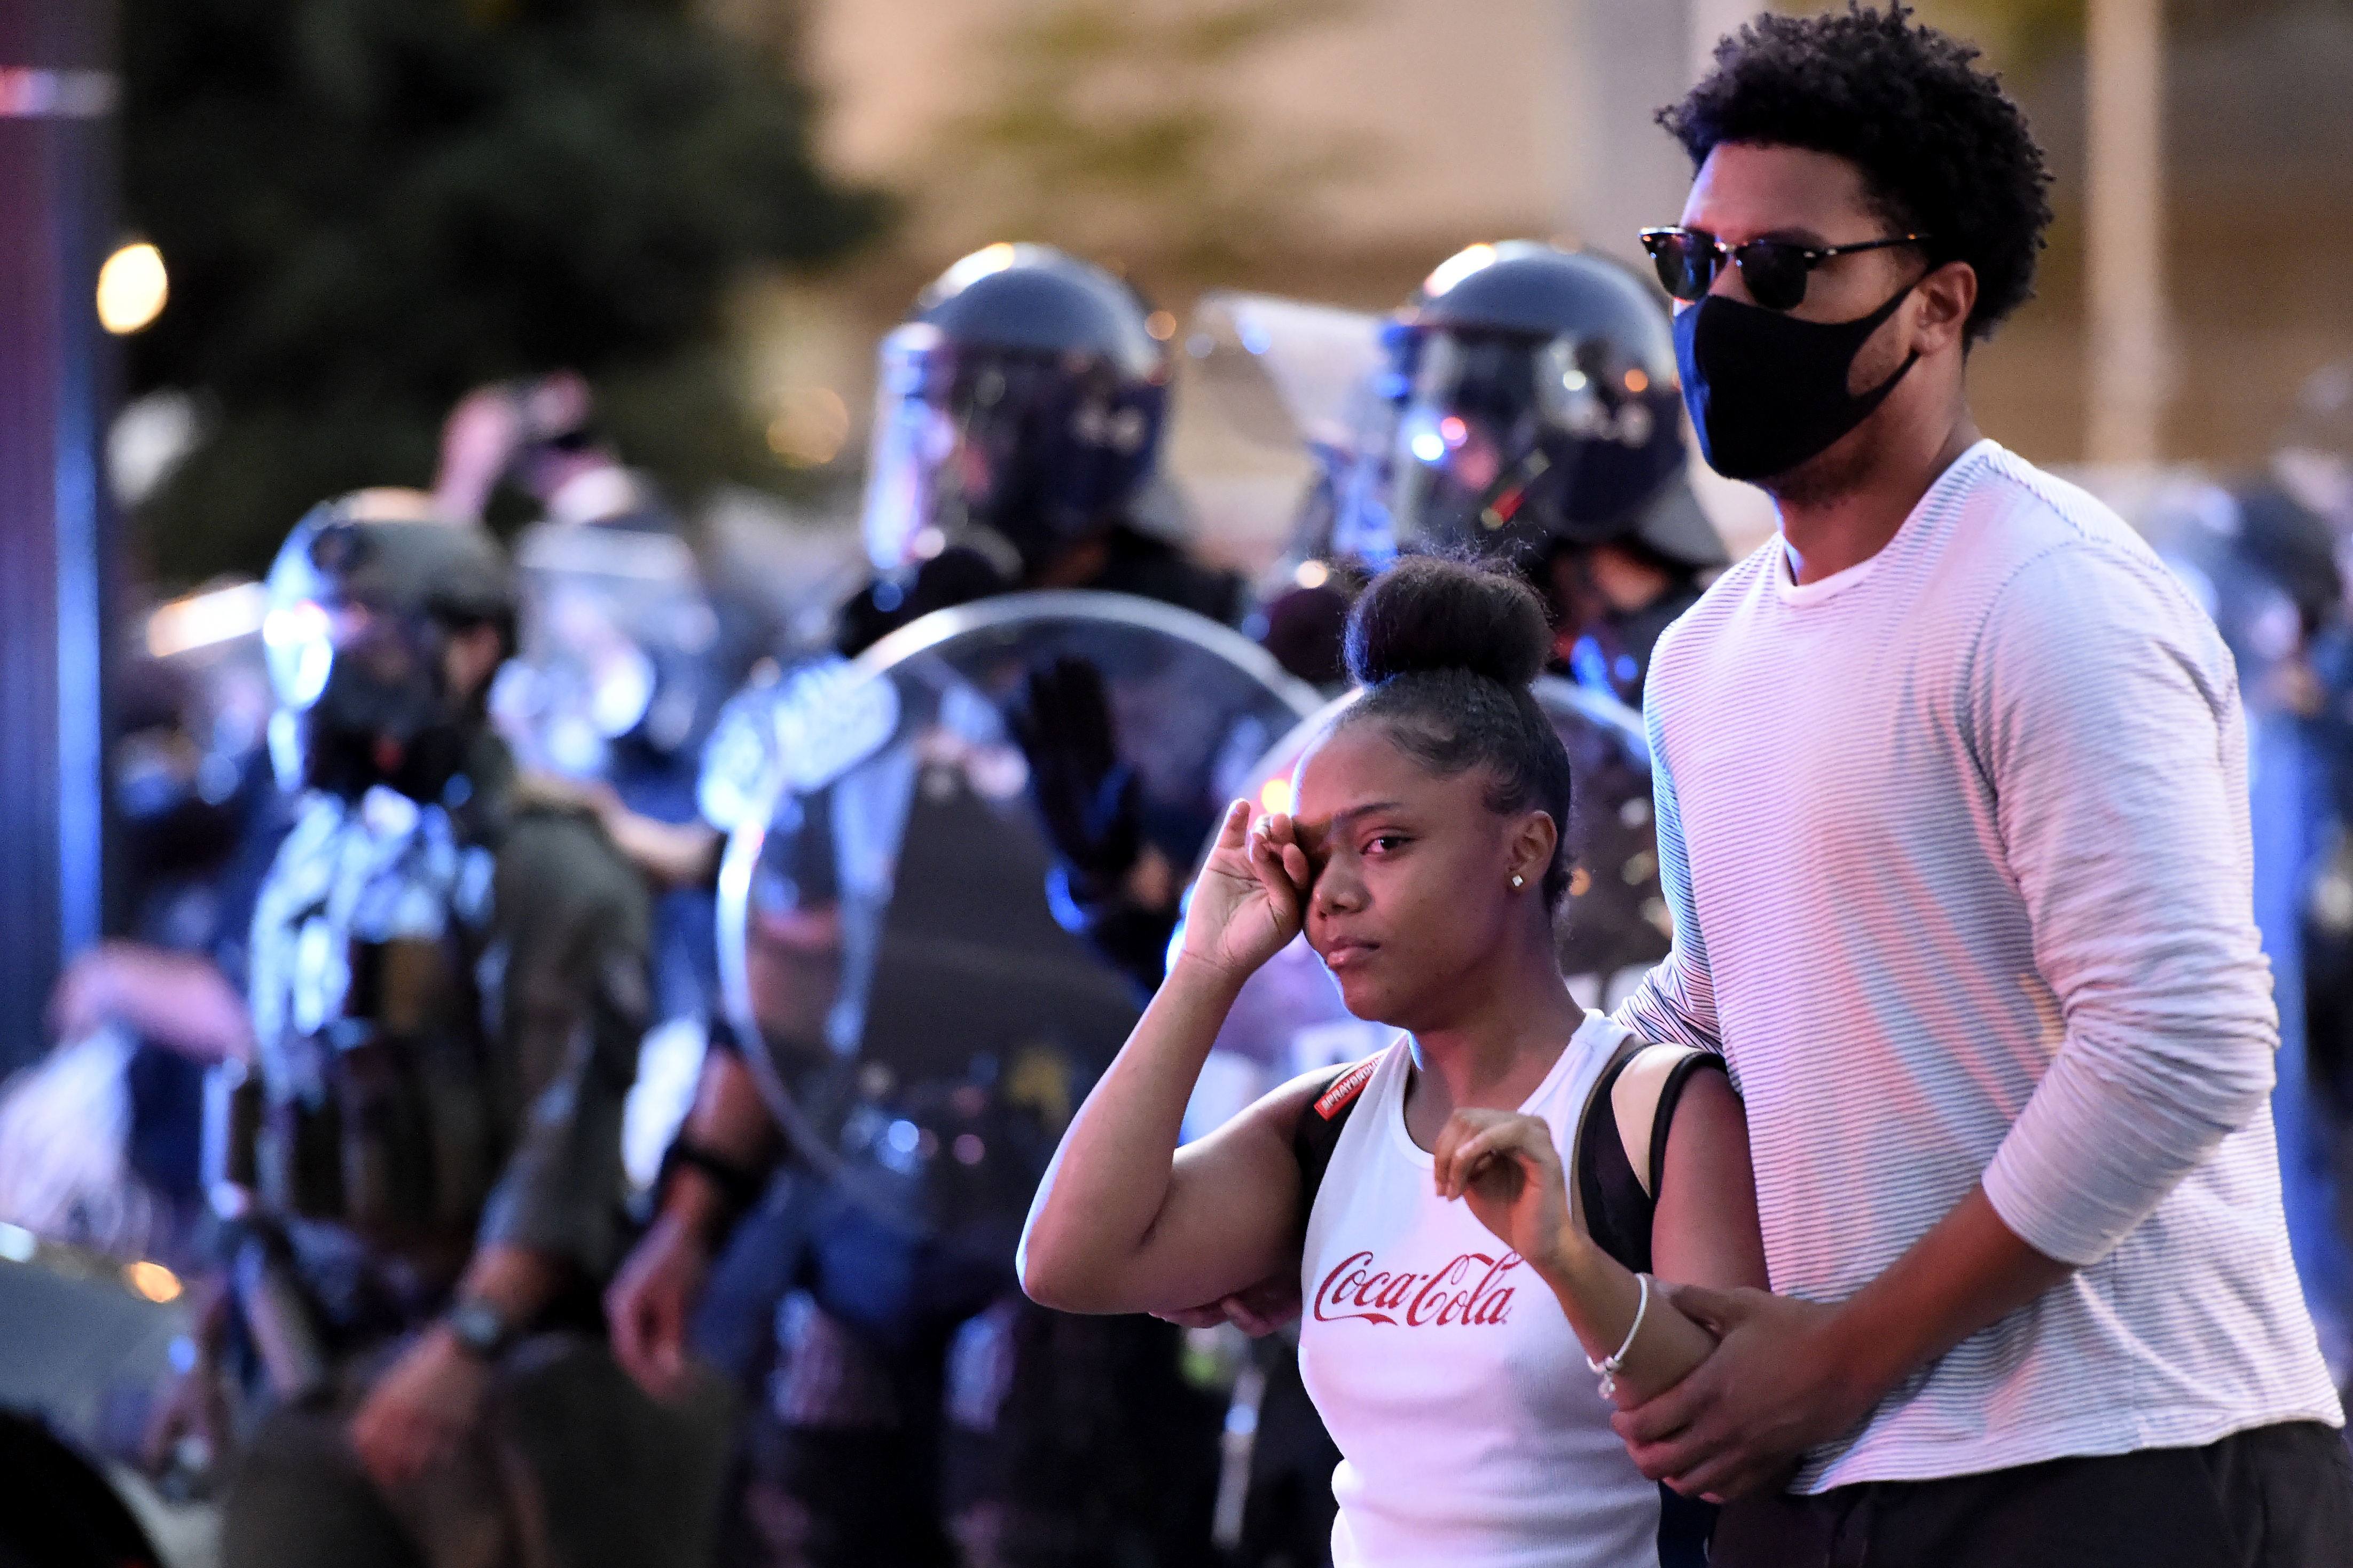 Demonstrators march, Sunday, May 31, 2020, in Atlanta. Protests continued following the death of George Floyd, who died after being restrained by Minneapolis police officers on May 25. (AP Photo/Mike Stewart)